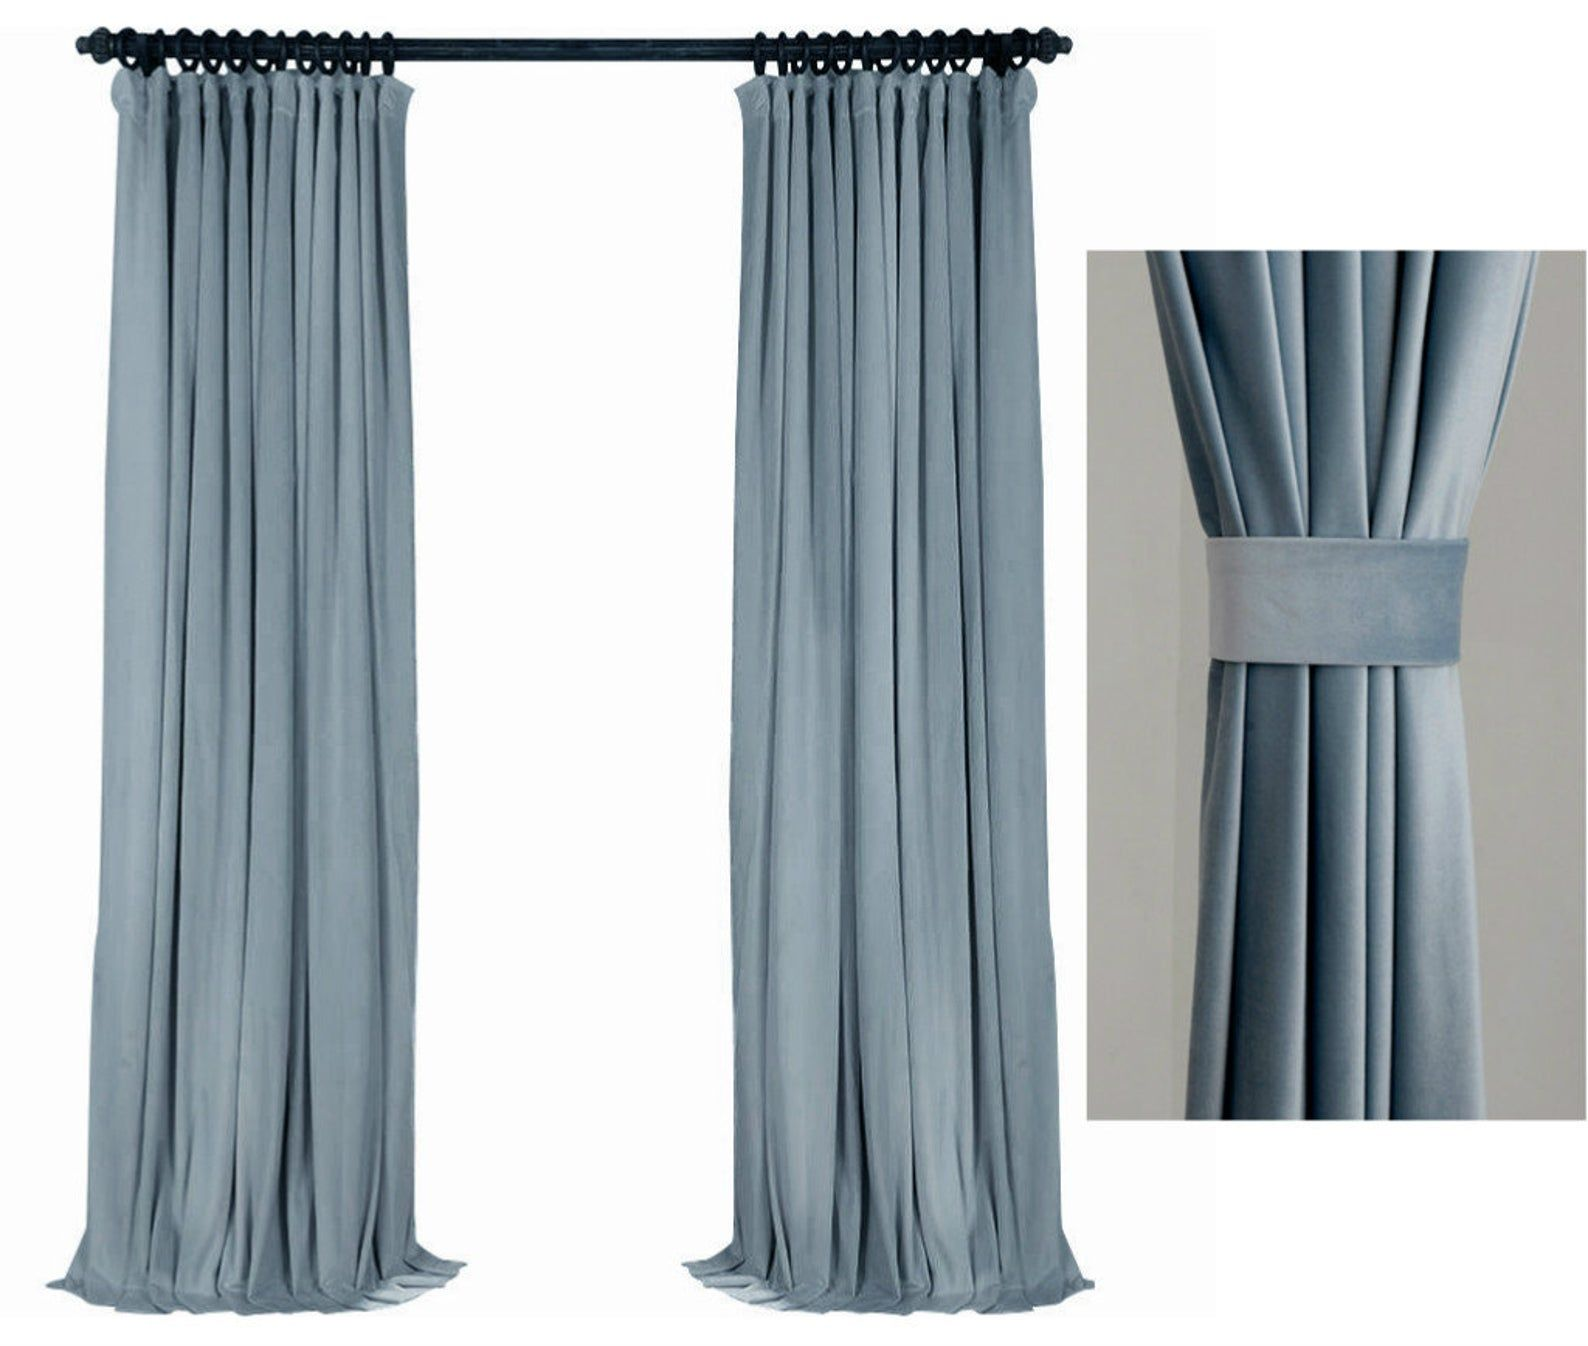 Pair Of Baby Blue Velvet Curtains Bedroom Velvet Curtains Living Room Velvet Curtains Custom Curtains Velvet Curtains Blue Velvet Curtains Purple Curtains